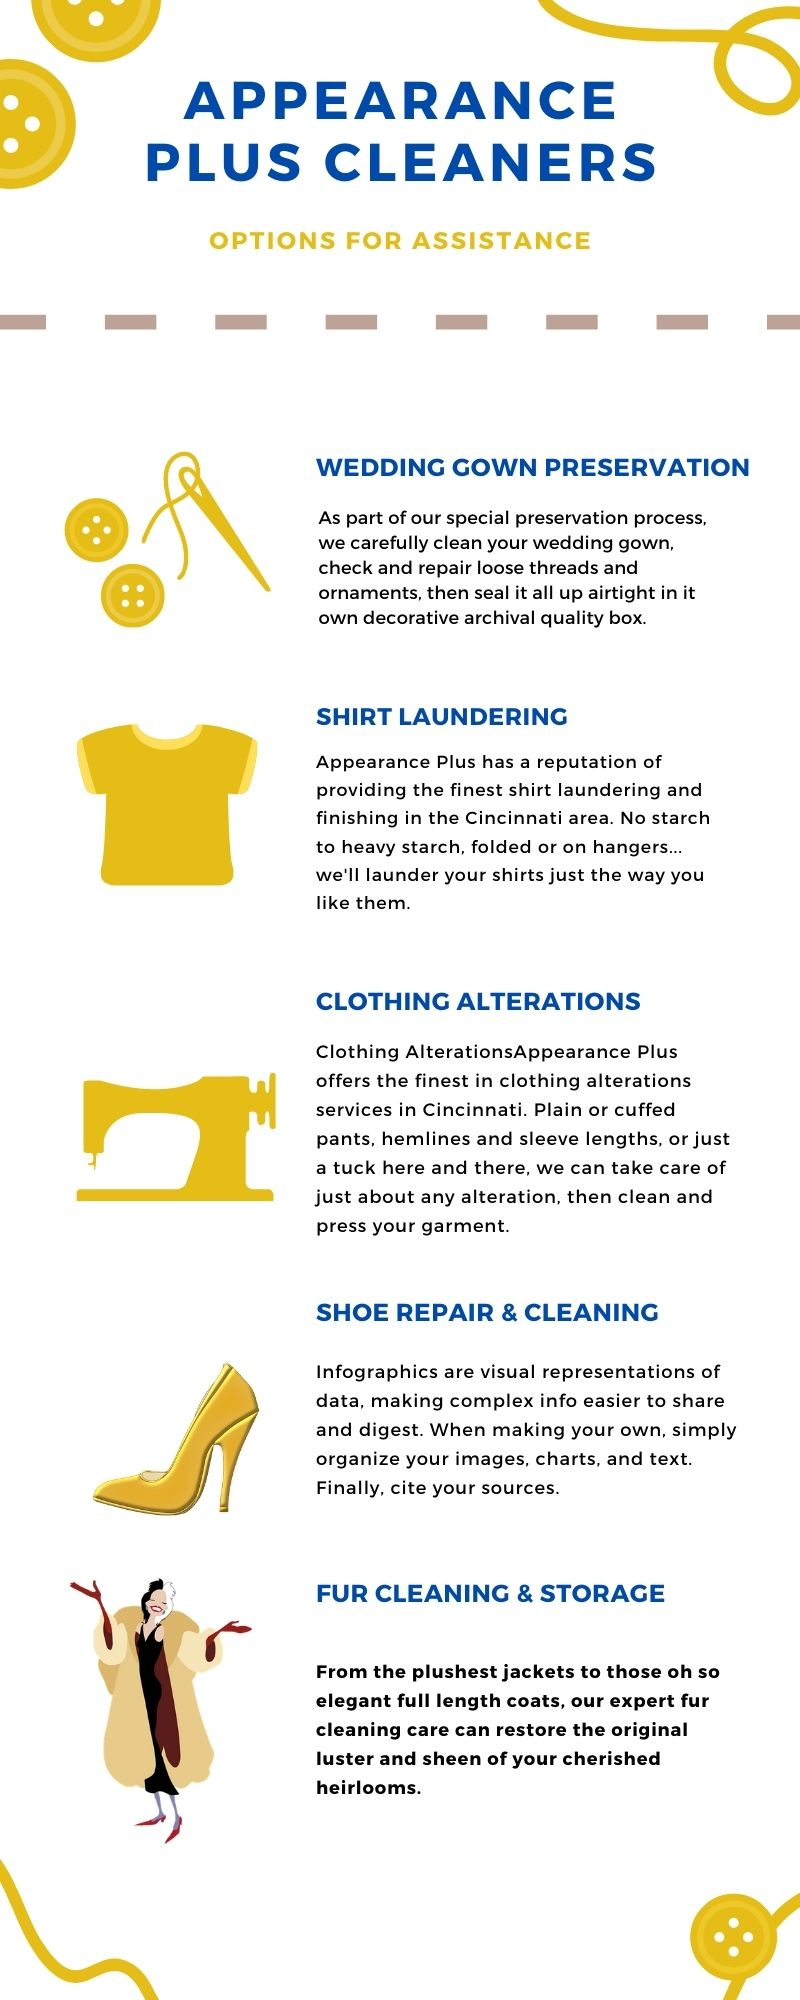 alterations, fur cleaning, wedding dress preservation, shirt laundering